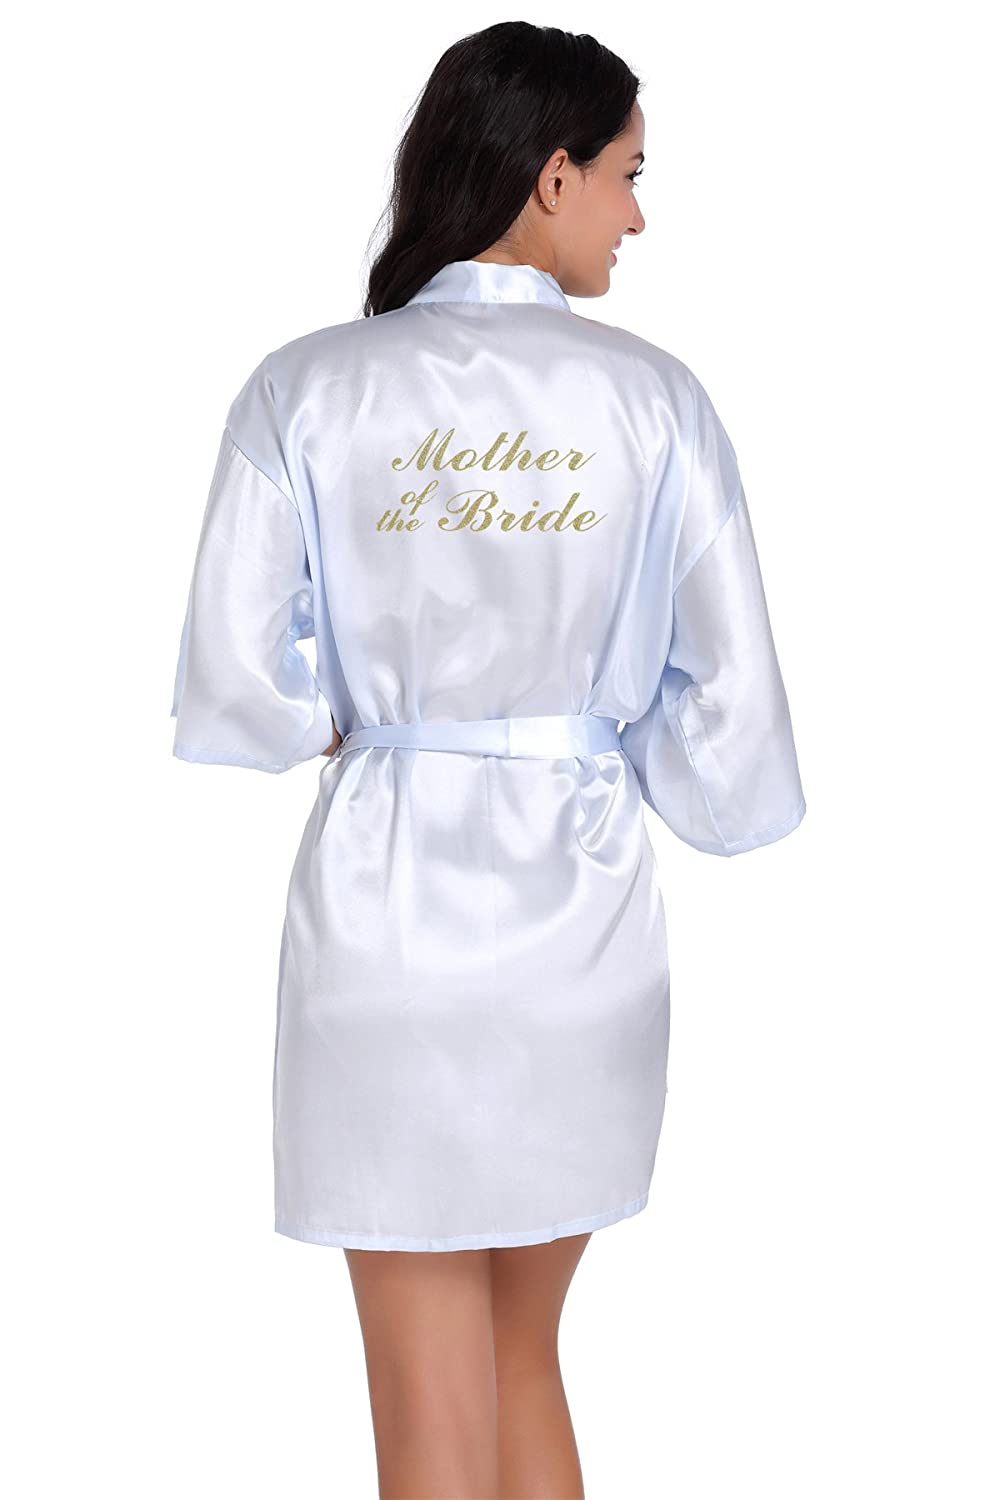 Honeystore Women's Wedding Party Robe with Embroidered Mother of the Bride HSY1712C9